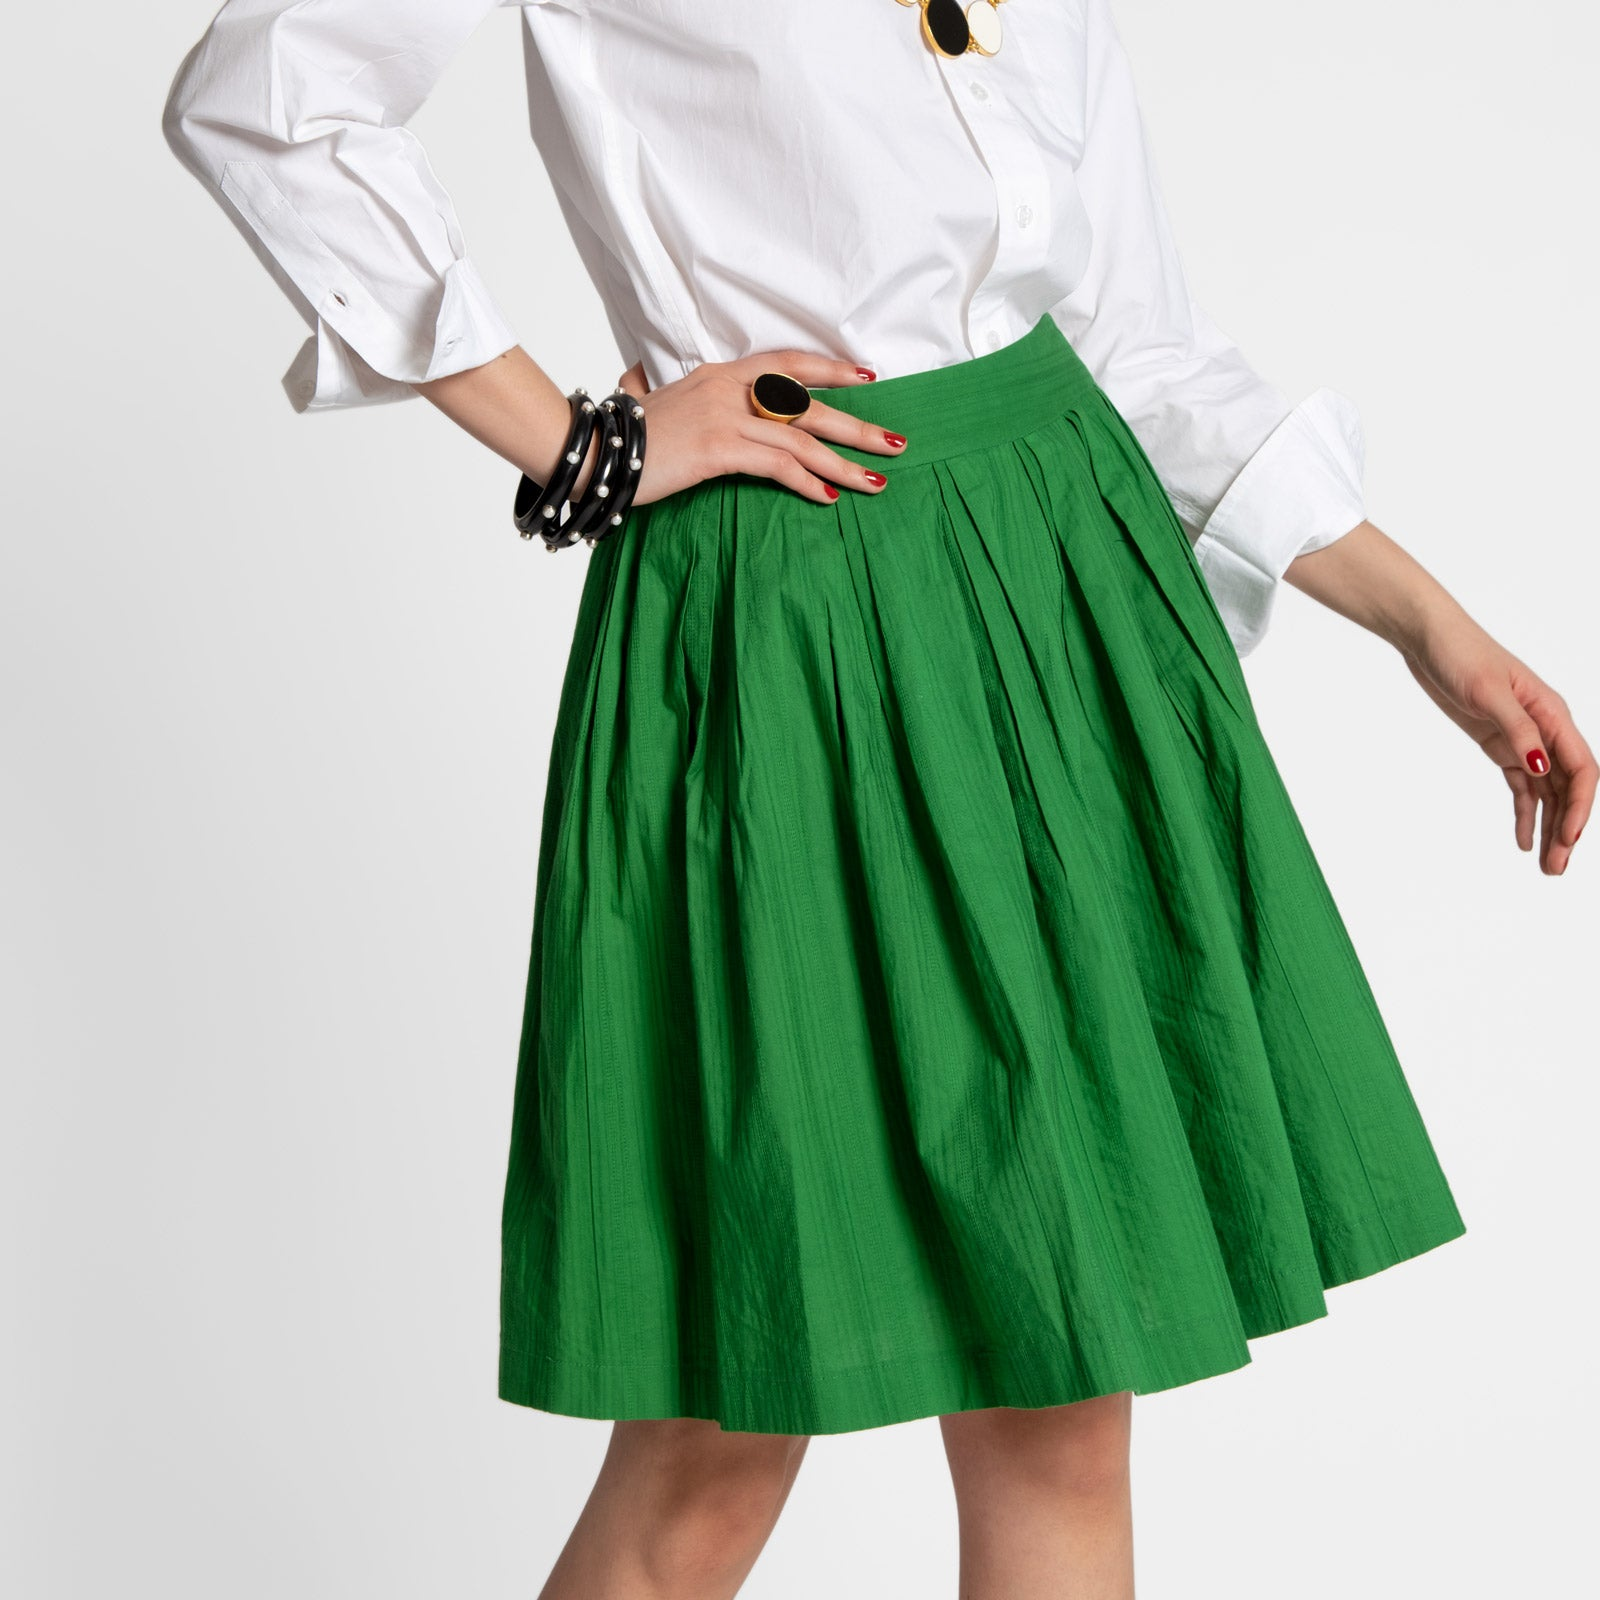 Claire Skirt Green